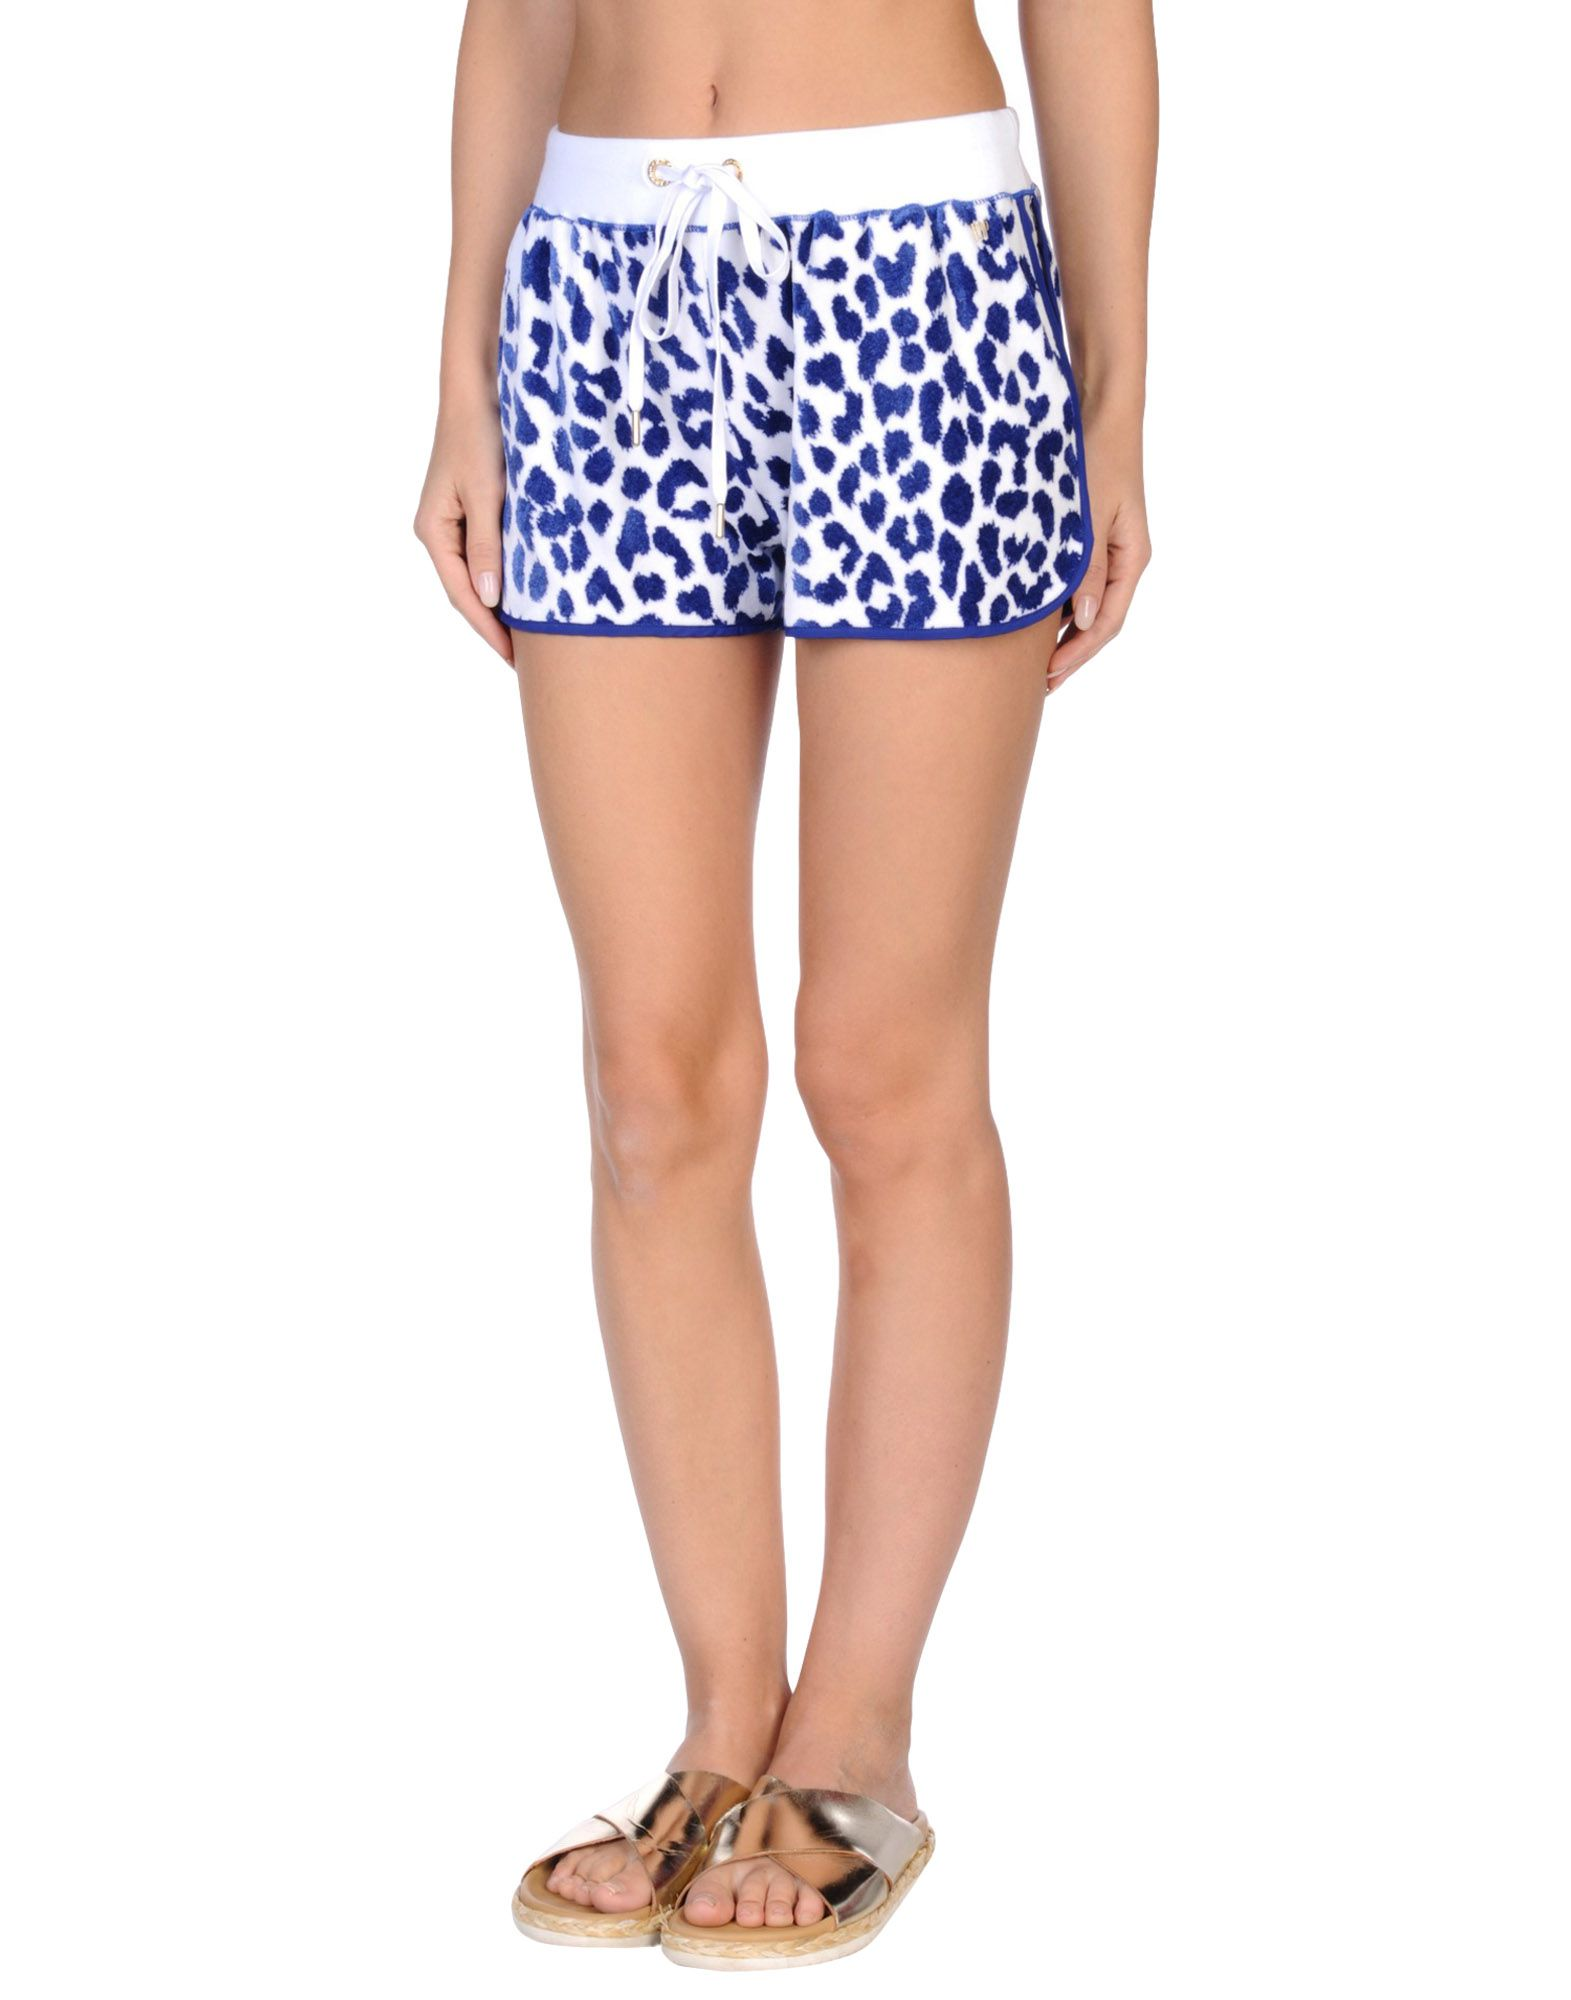 VDP COLLECTION Beach shorts and pants - Item 47205295